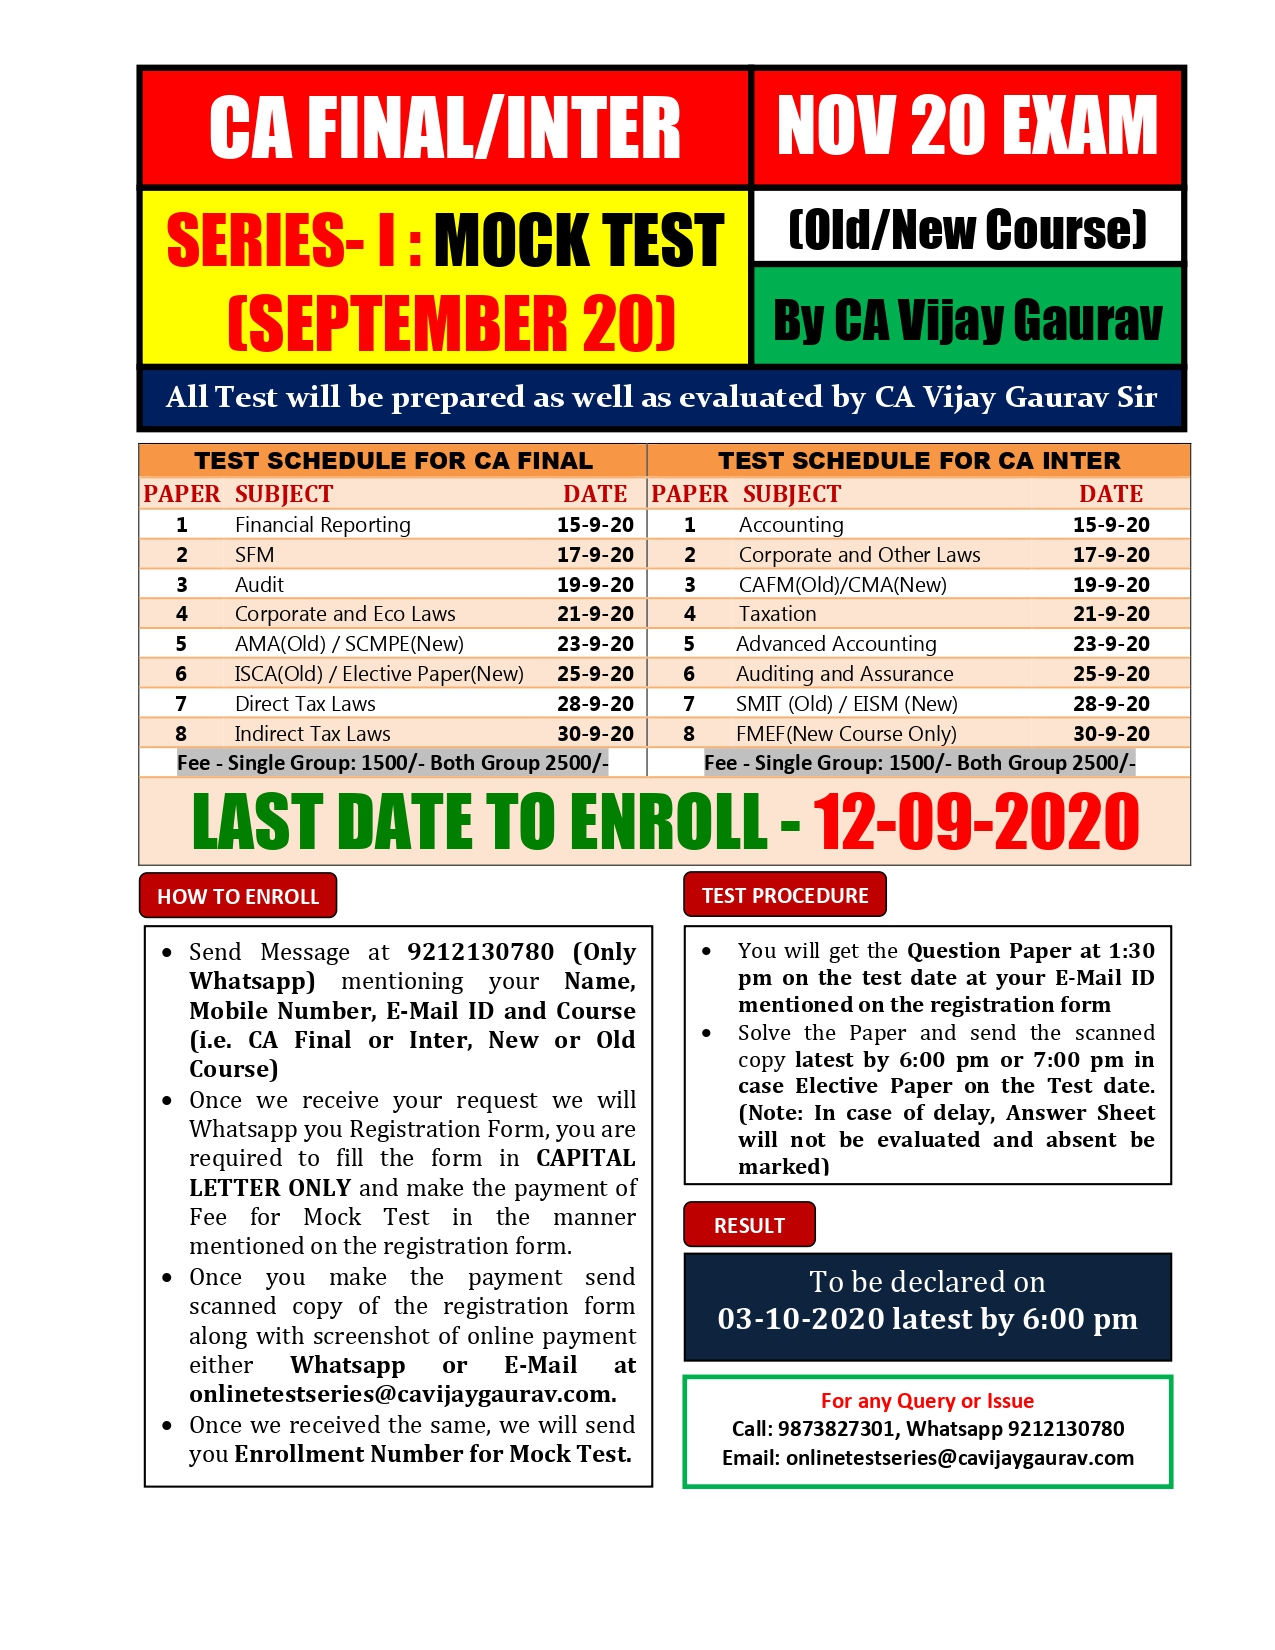 2. Mock Test Series I (CA Final and Inter) Nov 20 Exam